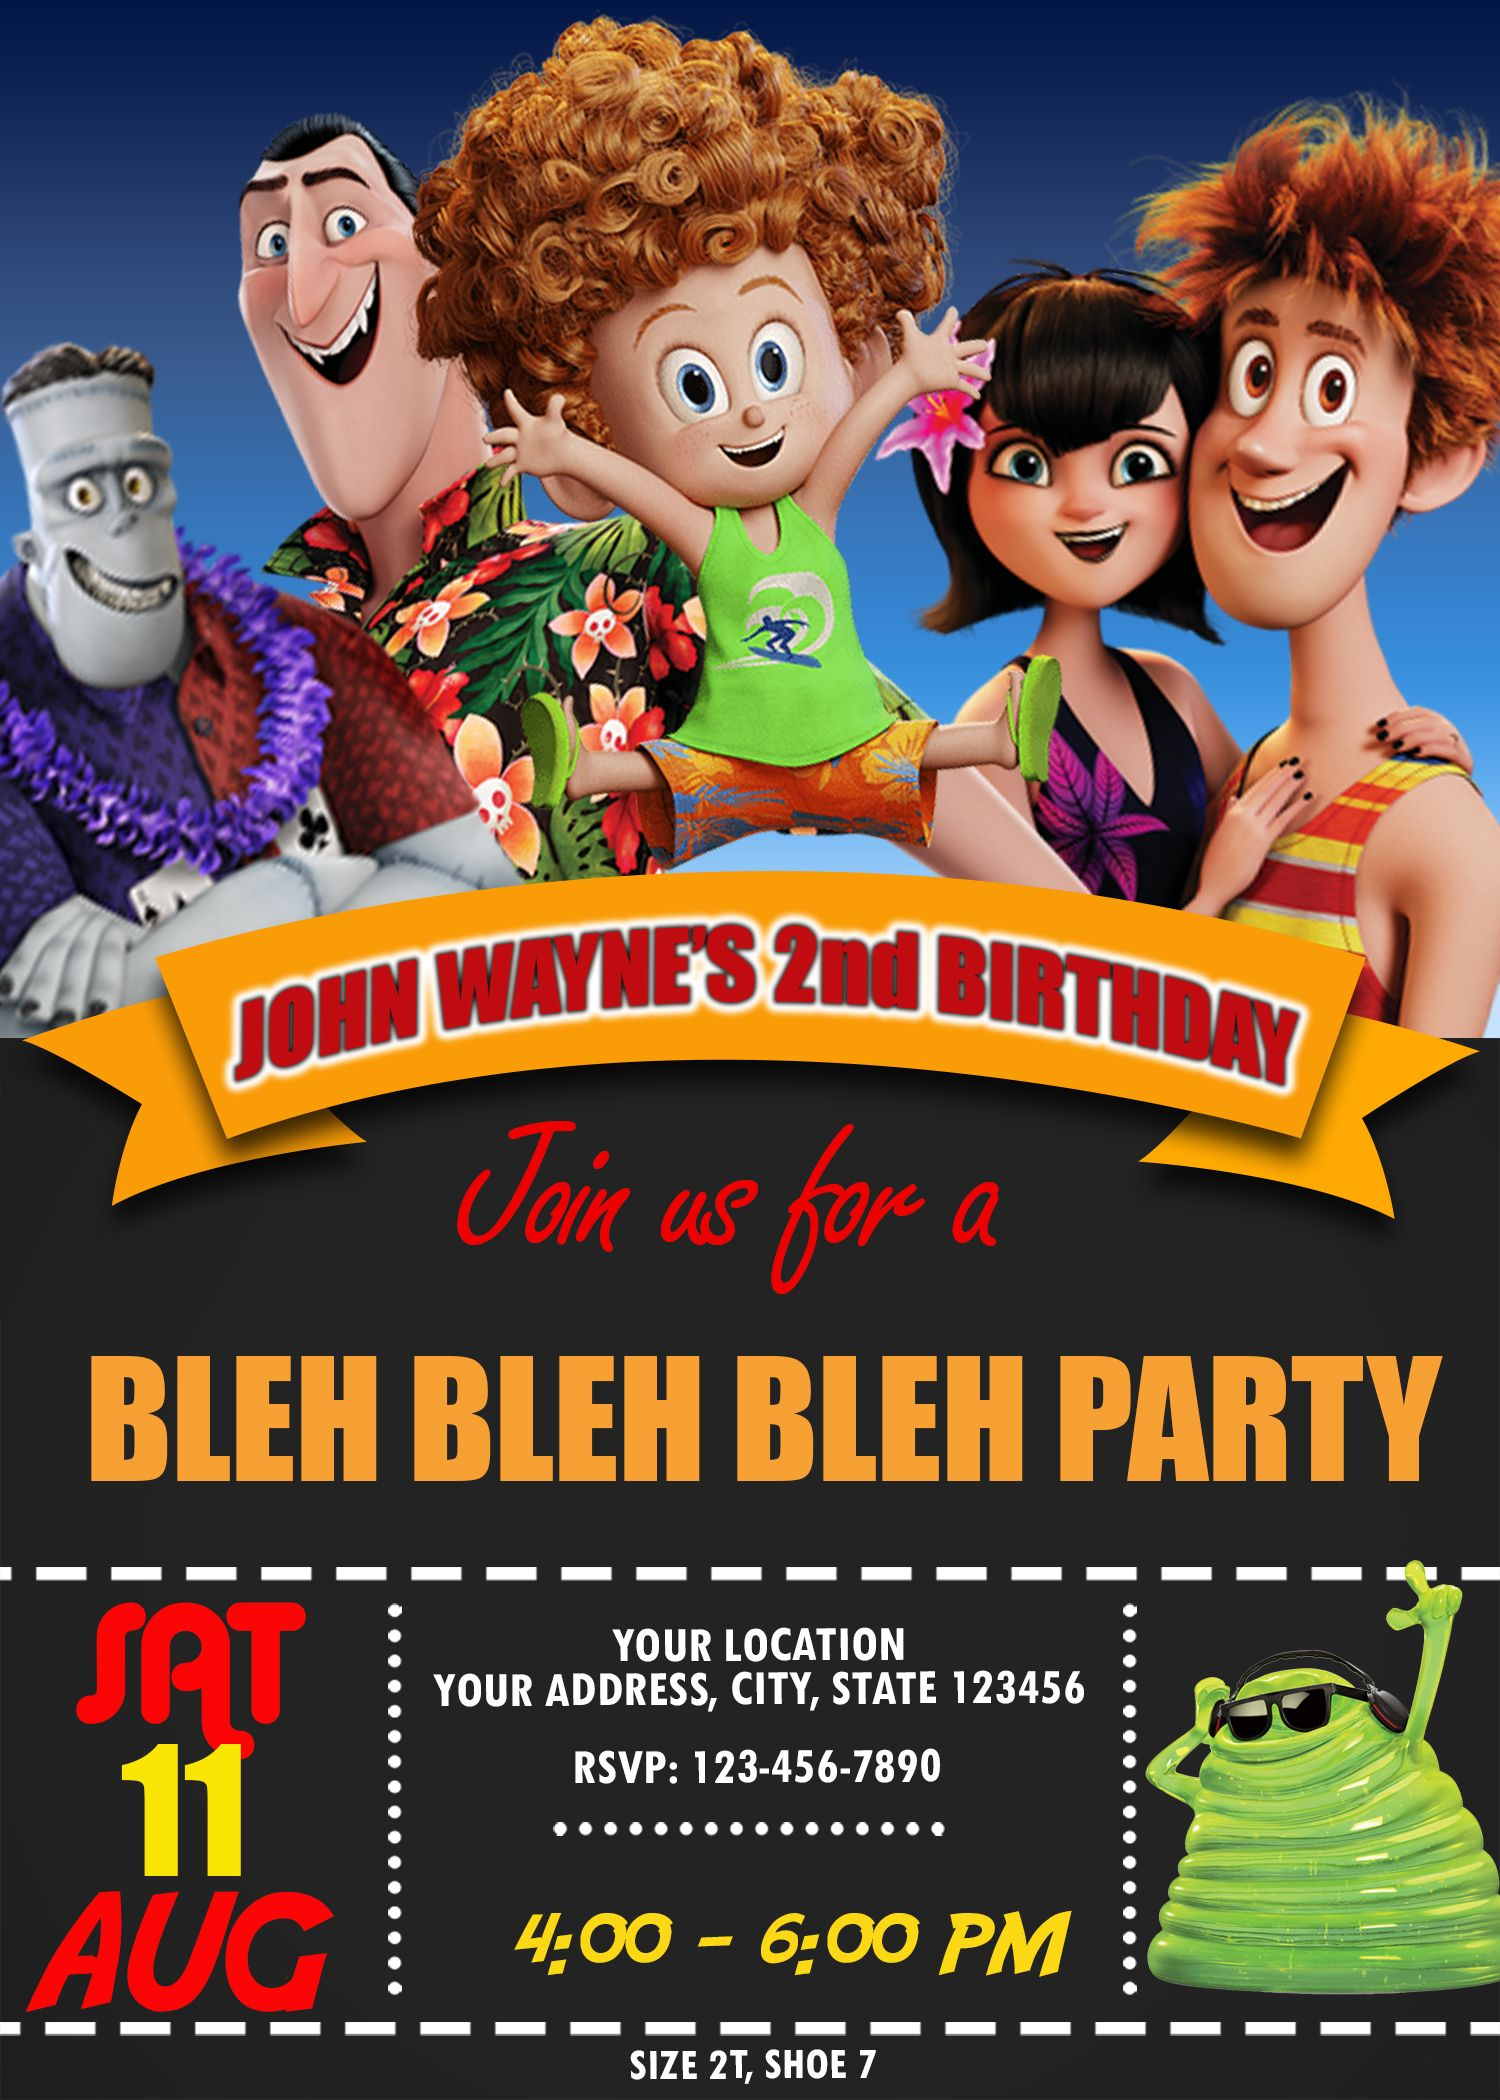 Hotel Transylvania 3 Birthday Invitation With Images Hotel